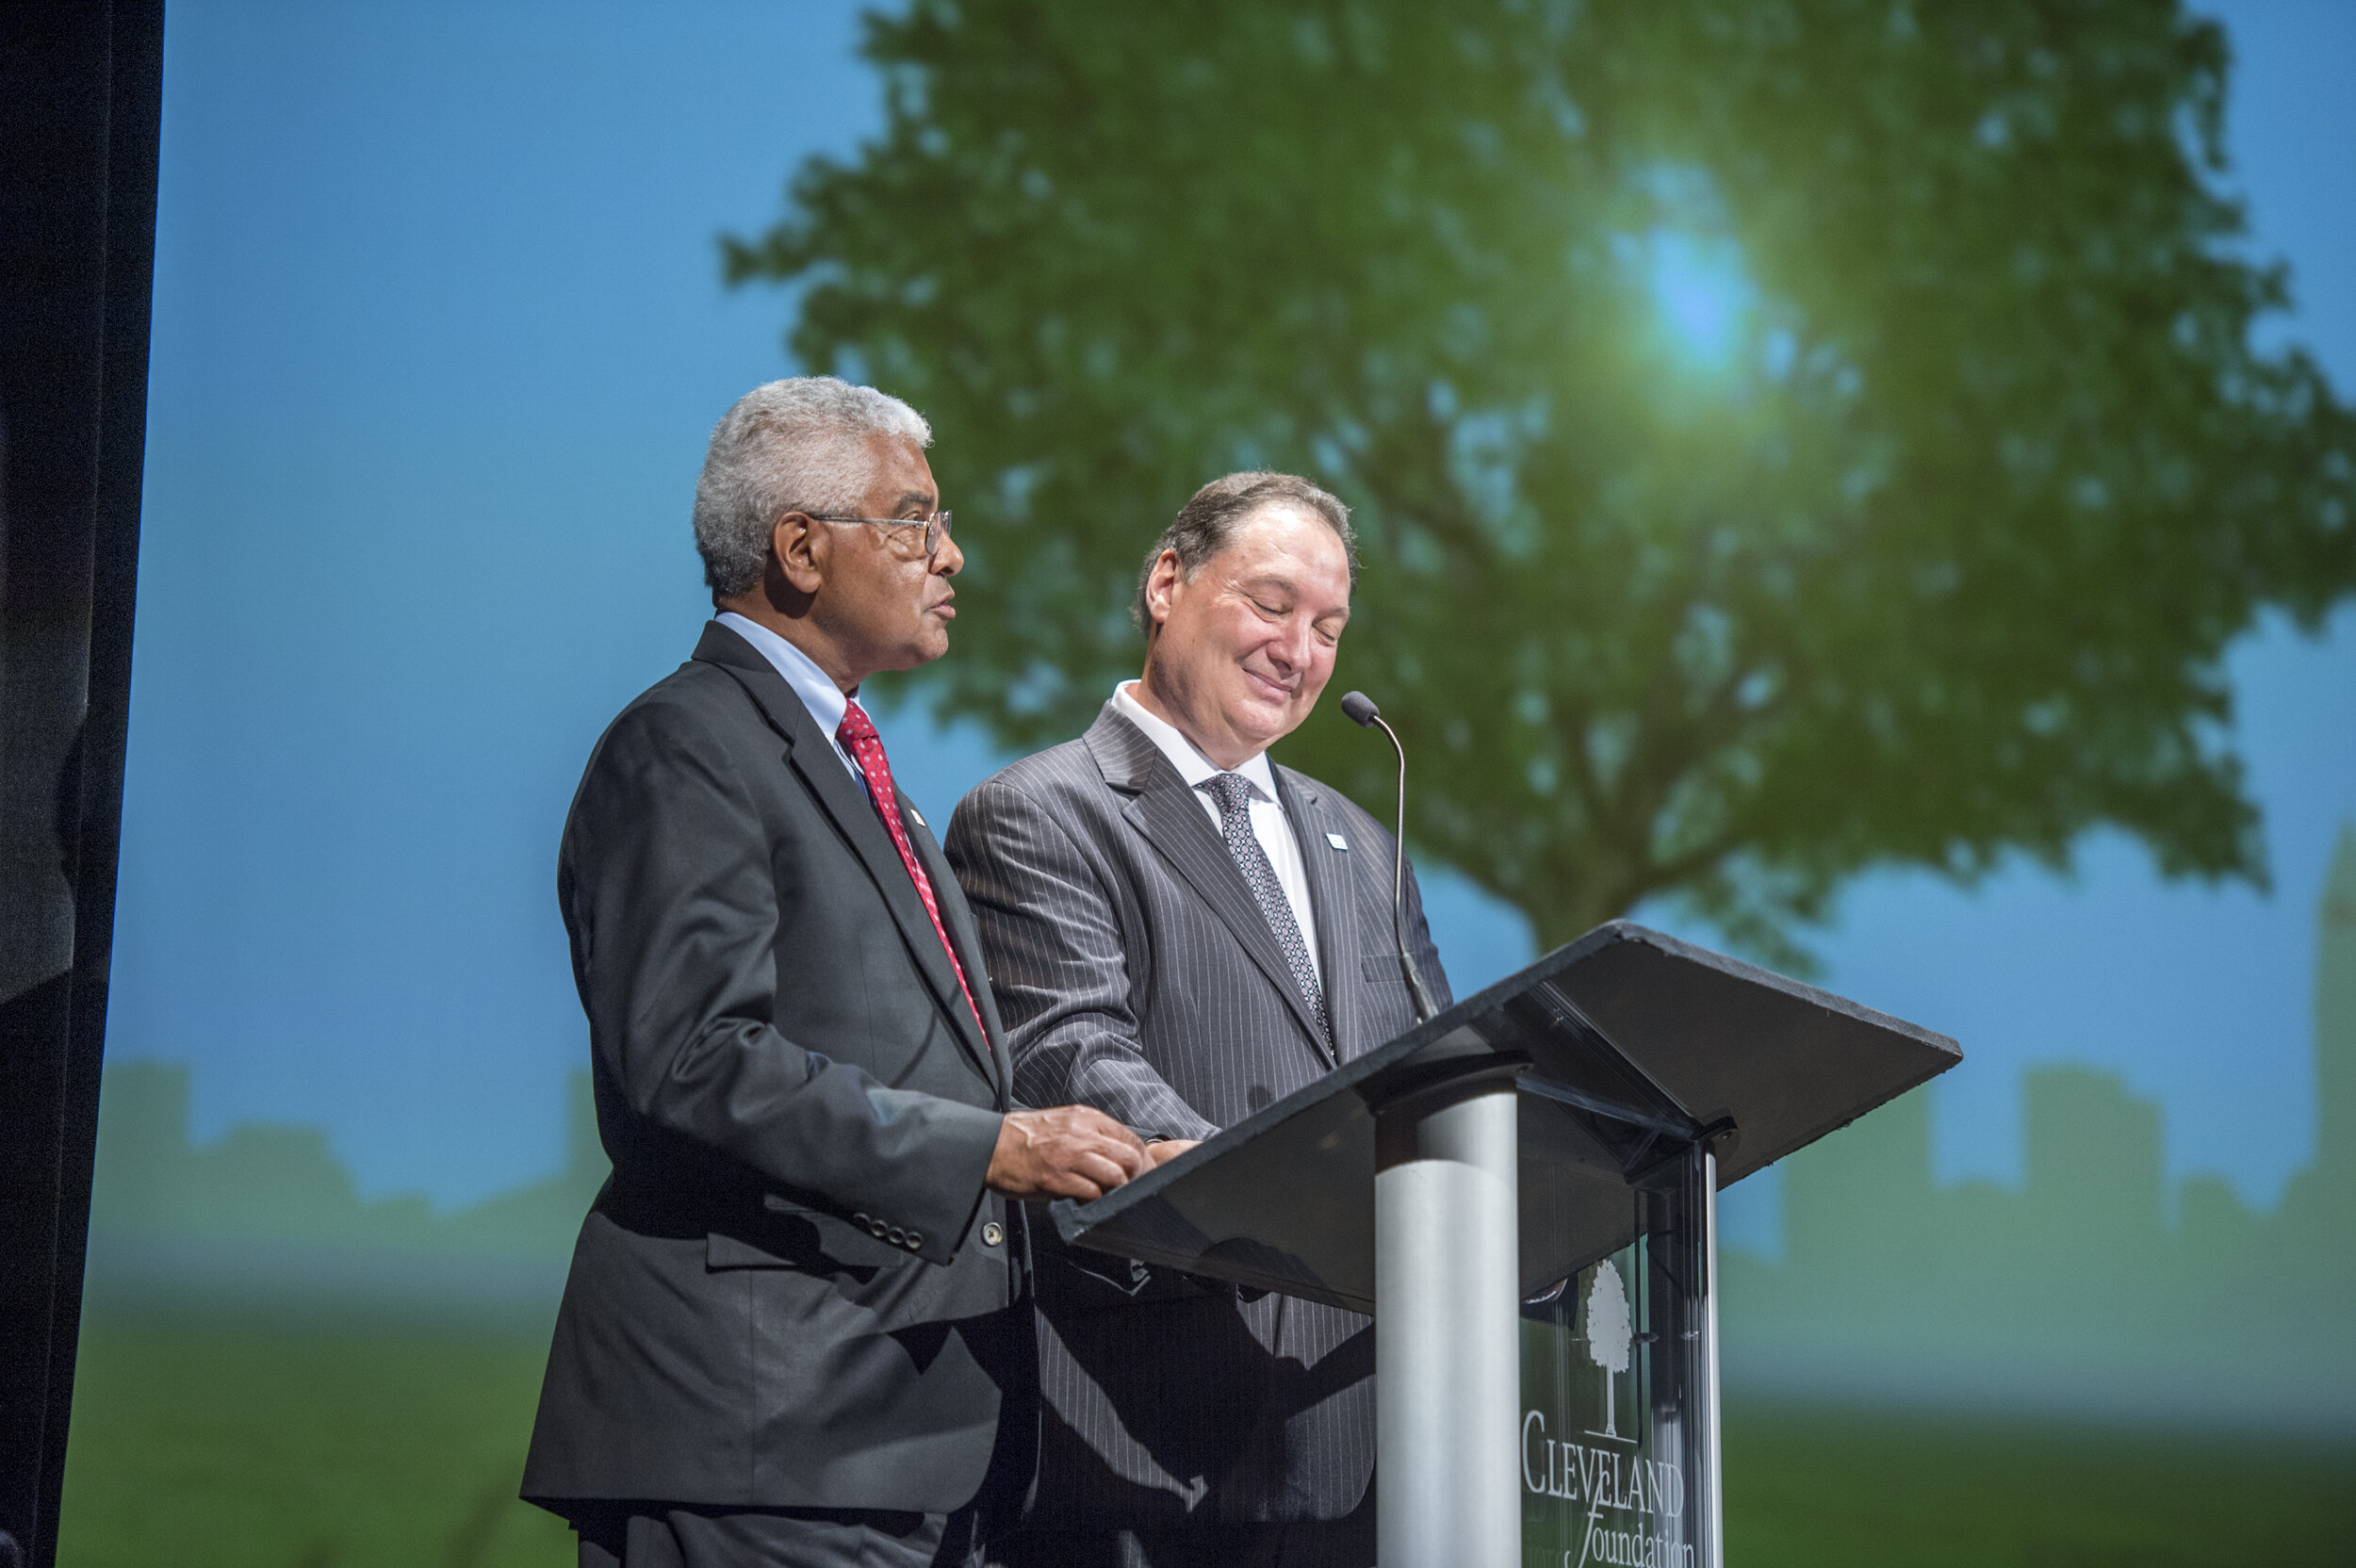 The late Steve Minter (left) and current Cleveland Foundation President and CEO Ronn Richard.  Photo Credit: The Cleveland Foundation